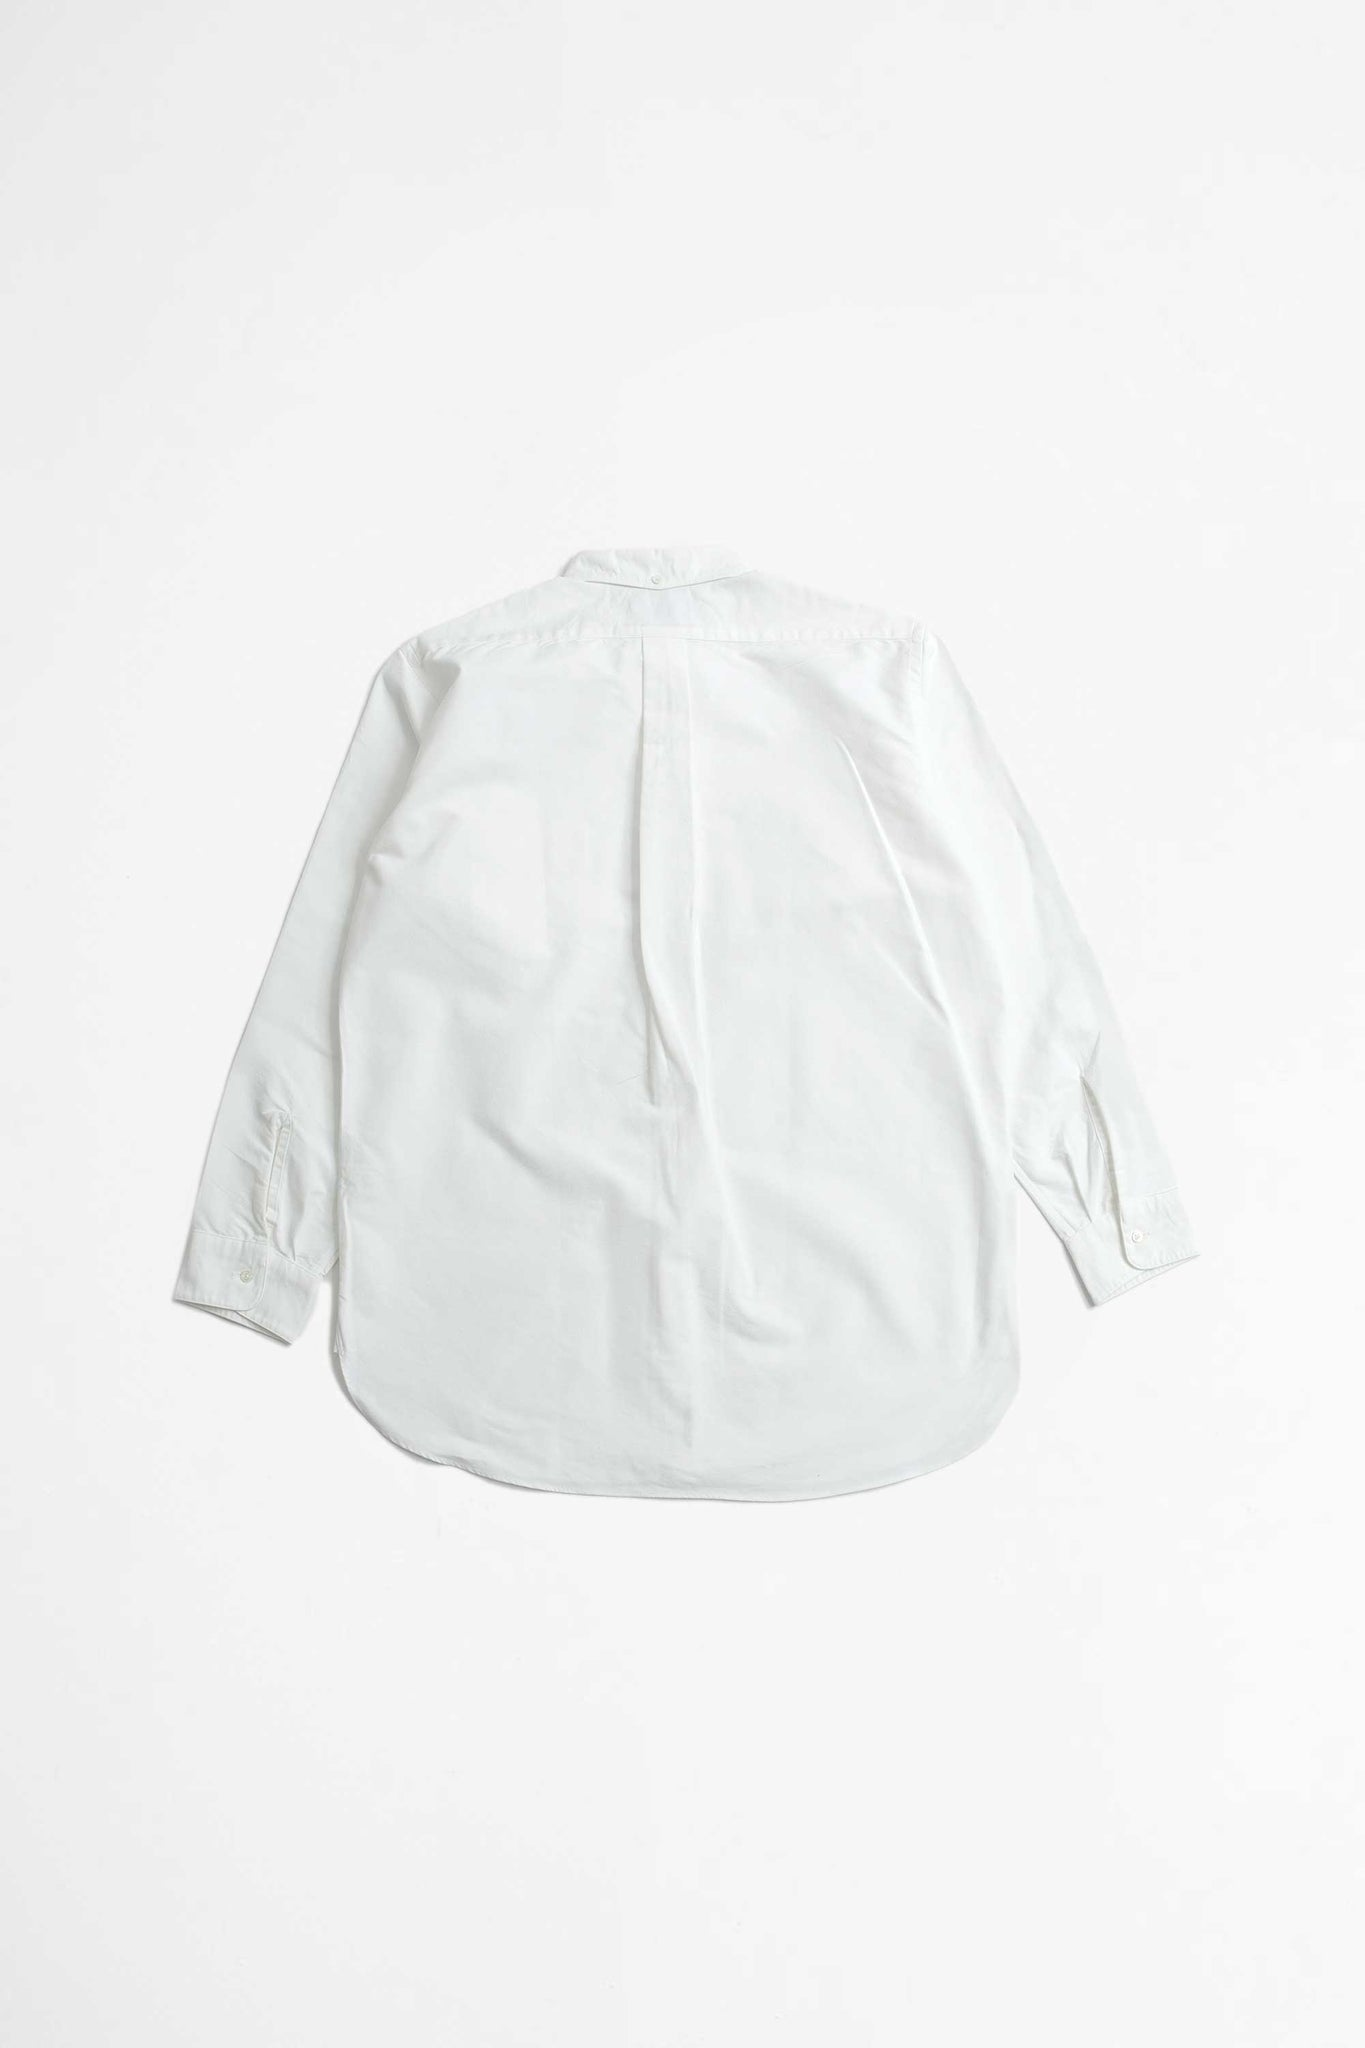 American oxford shirt white